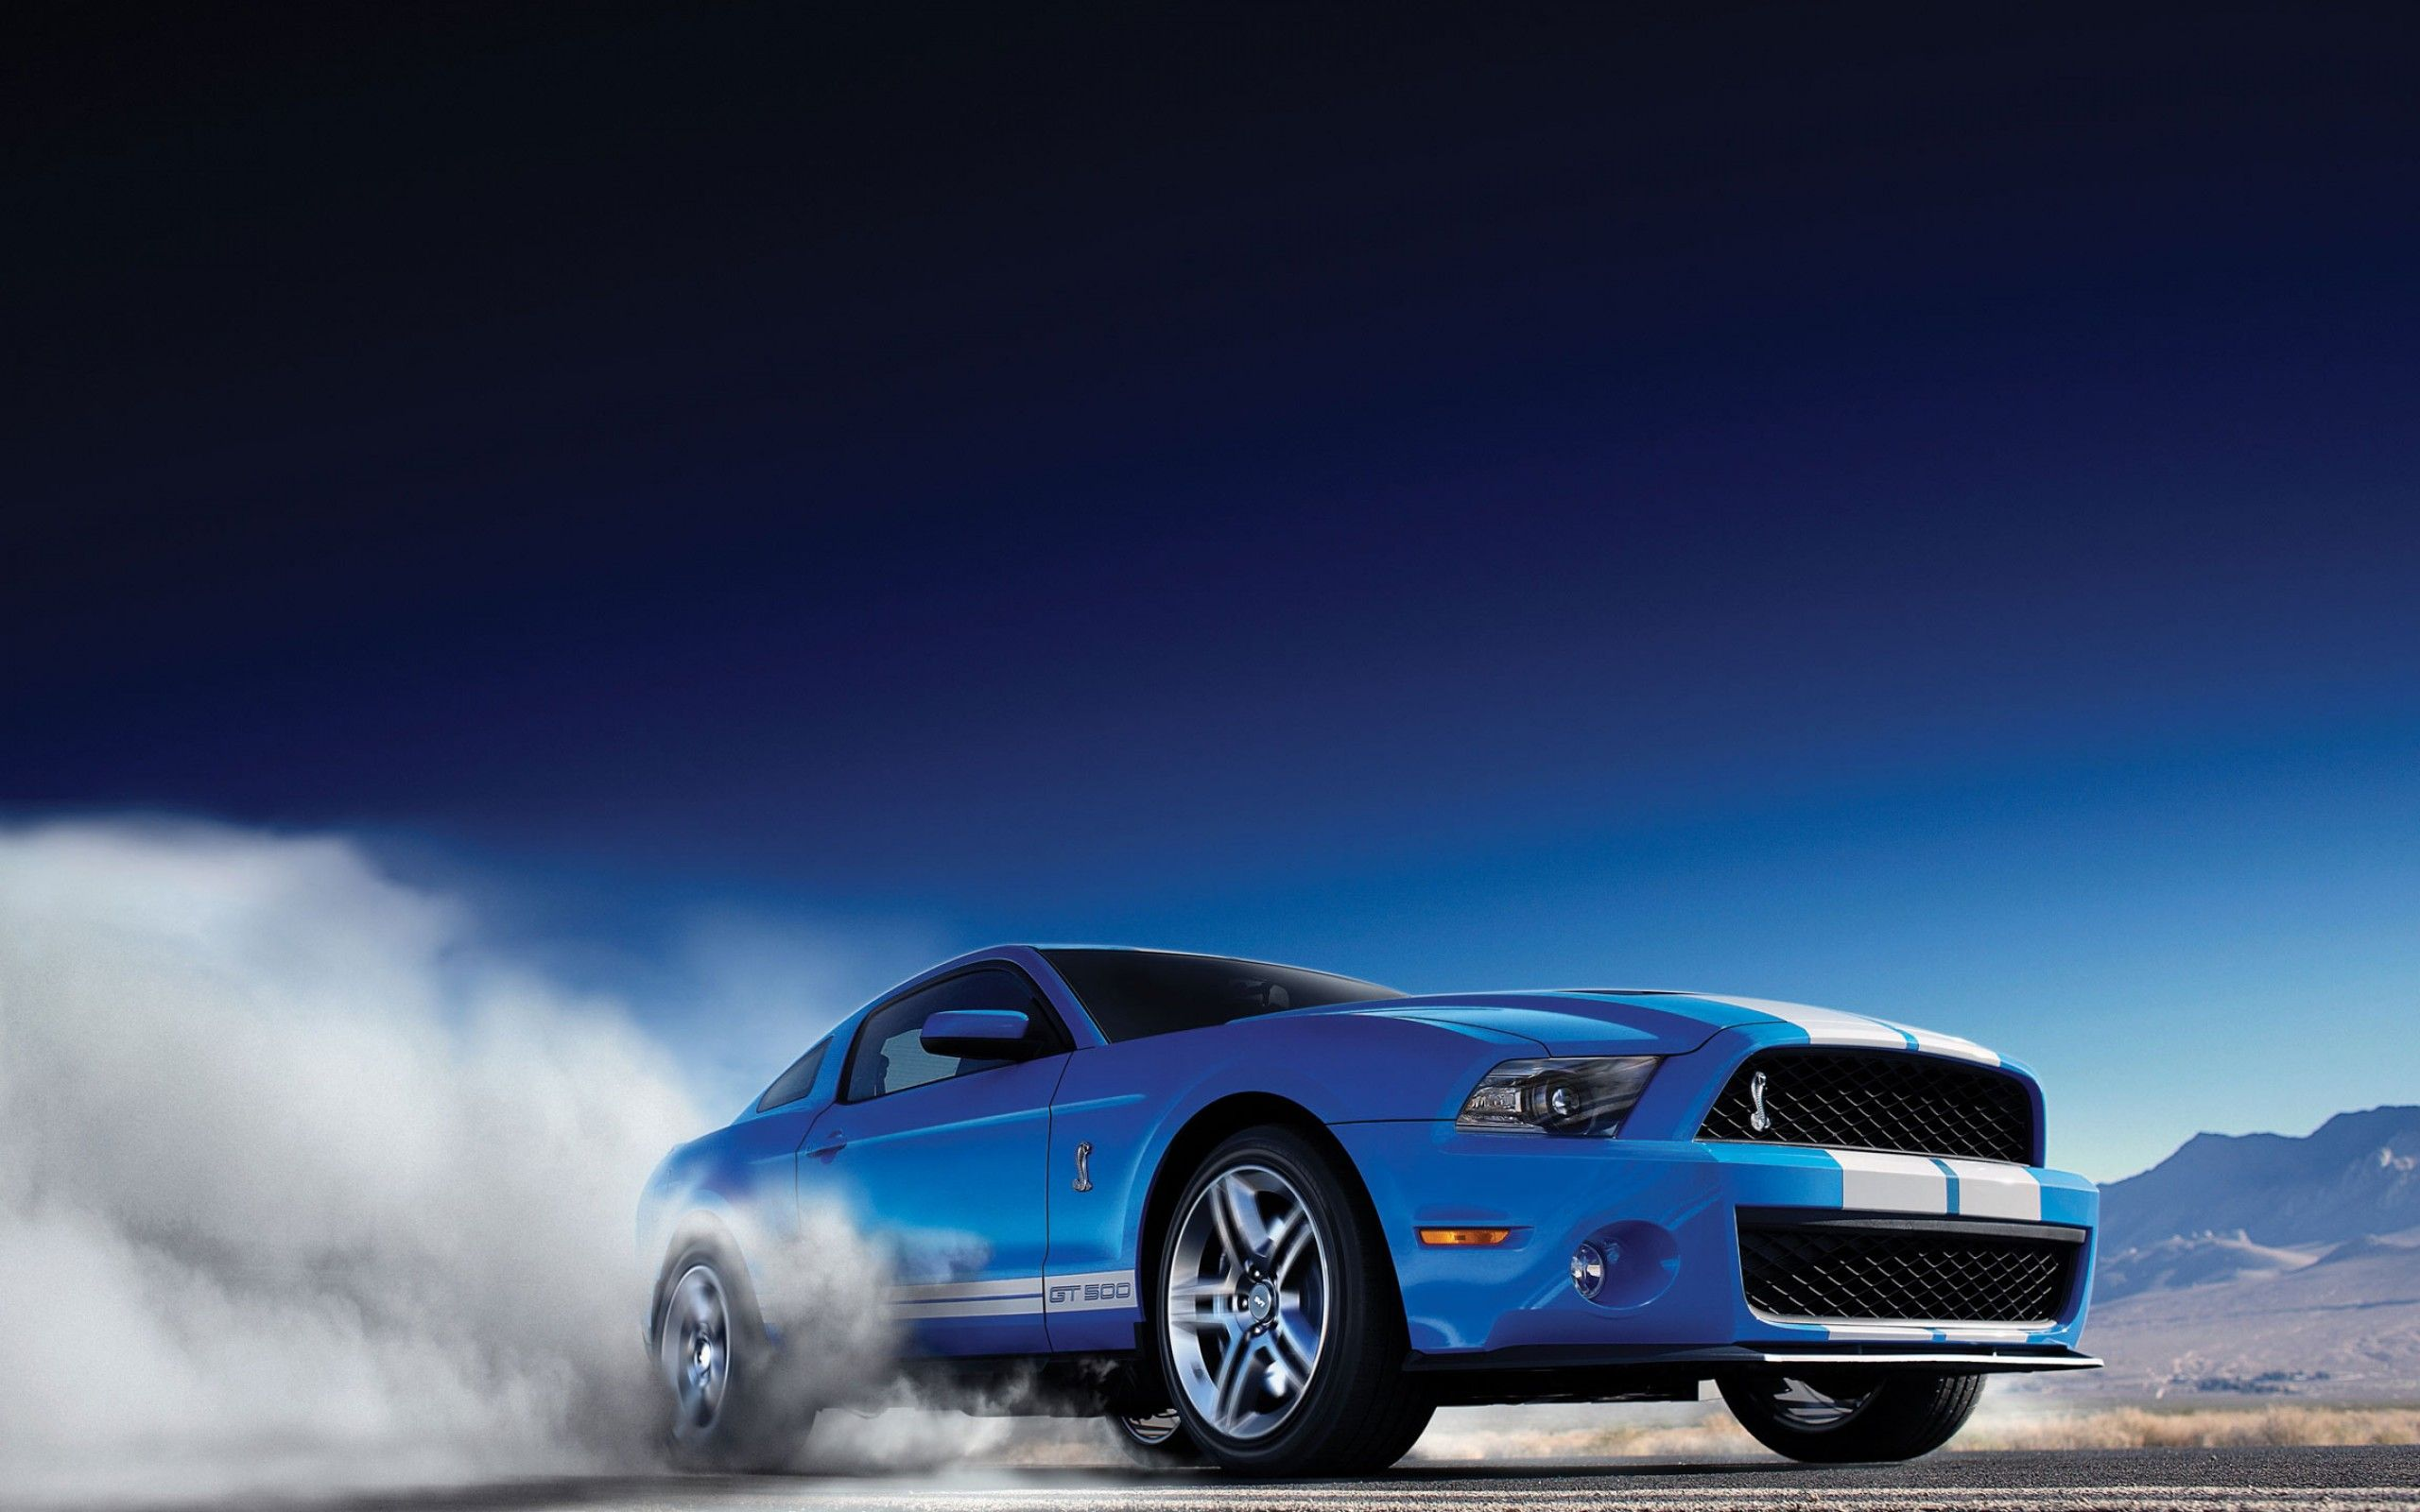 Ford shelby gt500 hd wallpaper imgprix com the best source of high definition wallpapers for your desktop windows mac tablet android iphone